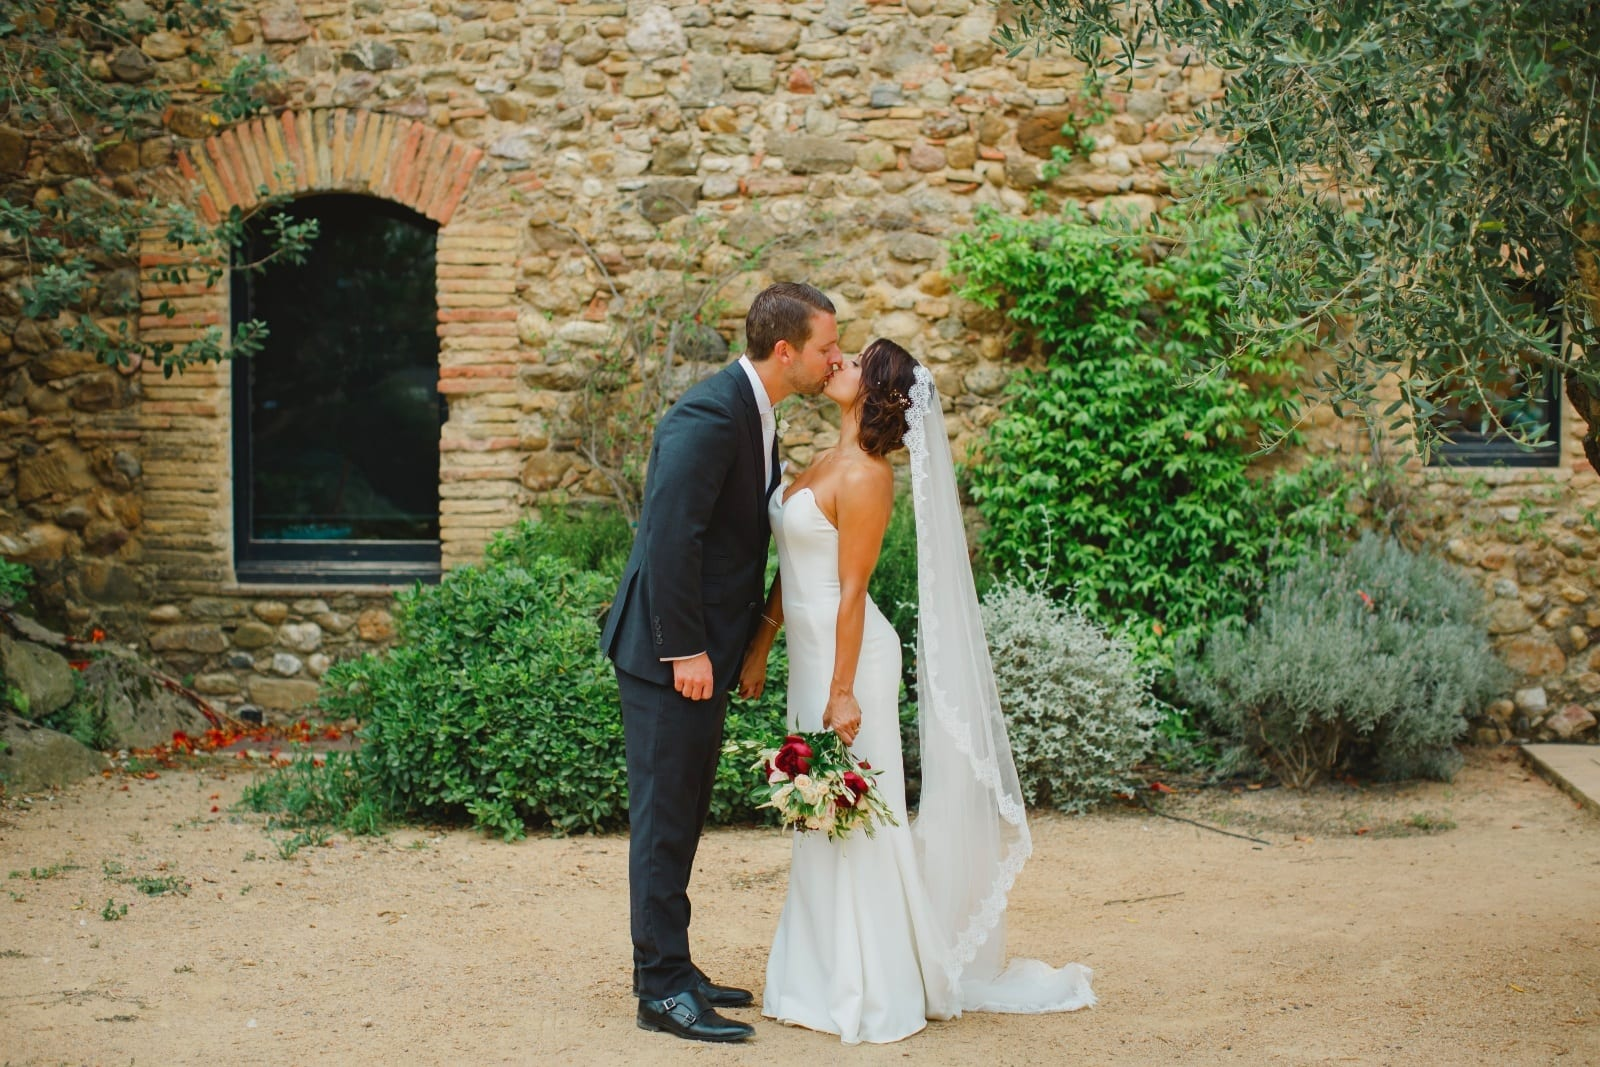 How To Plan A Destination Wedding 10 Things Ody Tells